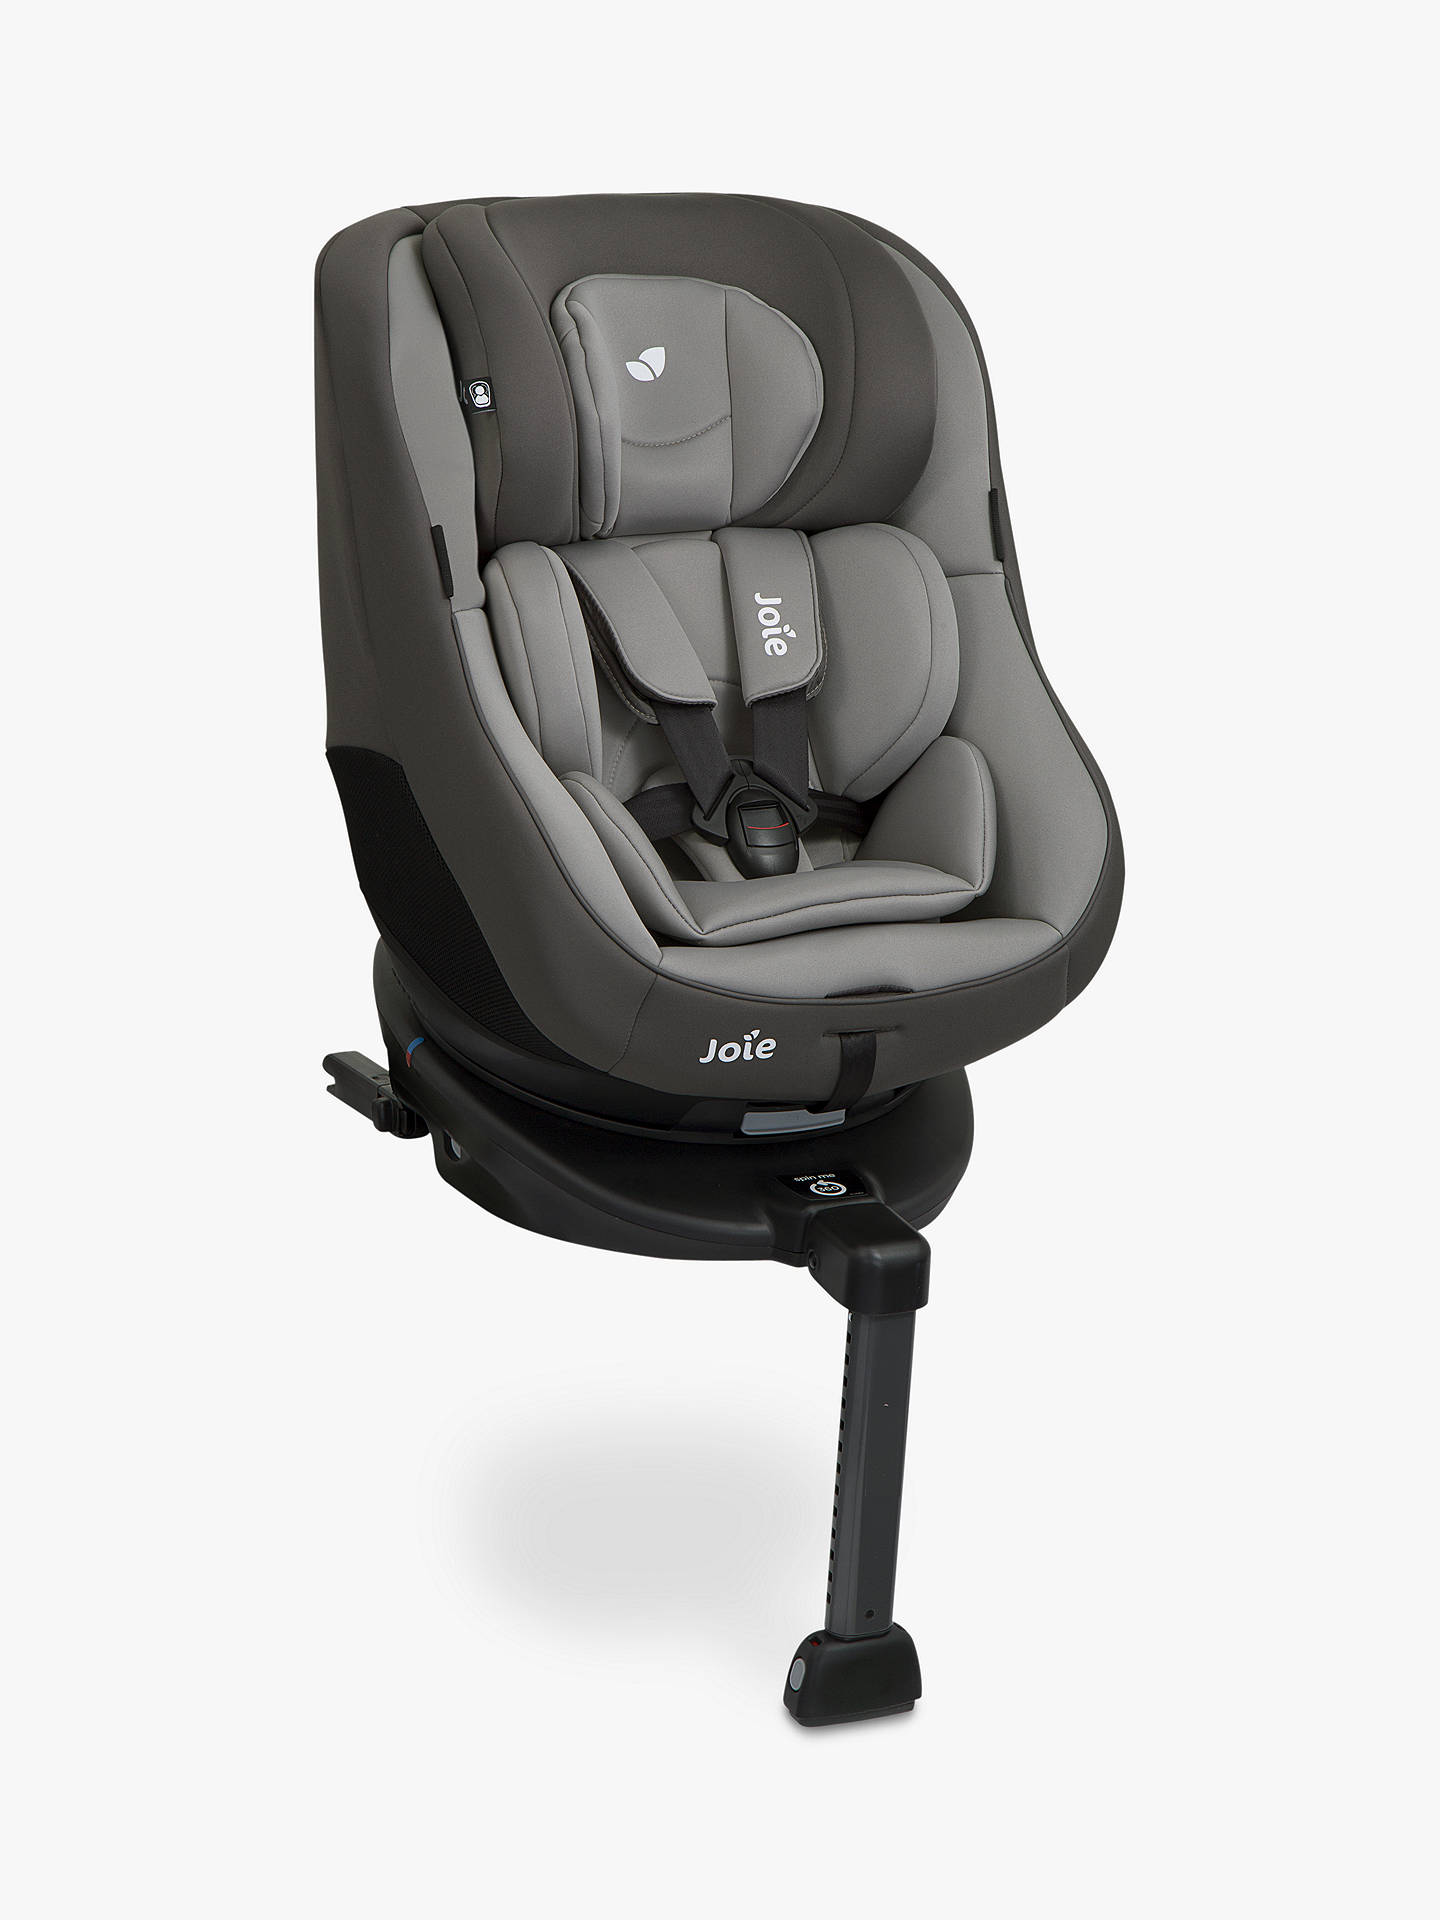 Joie Baby Spin 360 Group 0+/1 Car Seat, Dark Pewter at ...